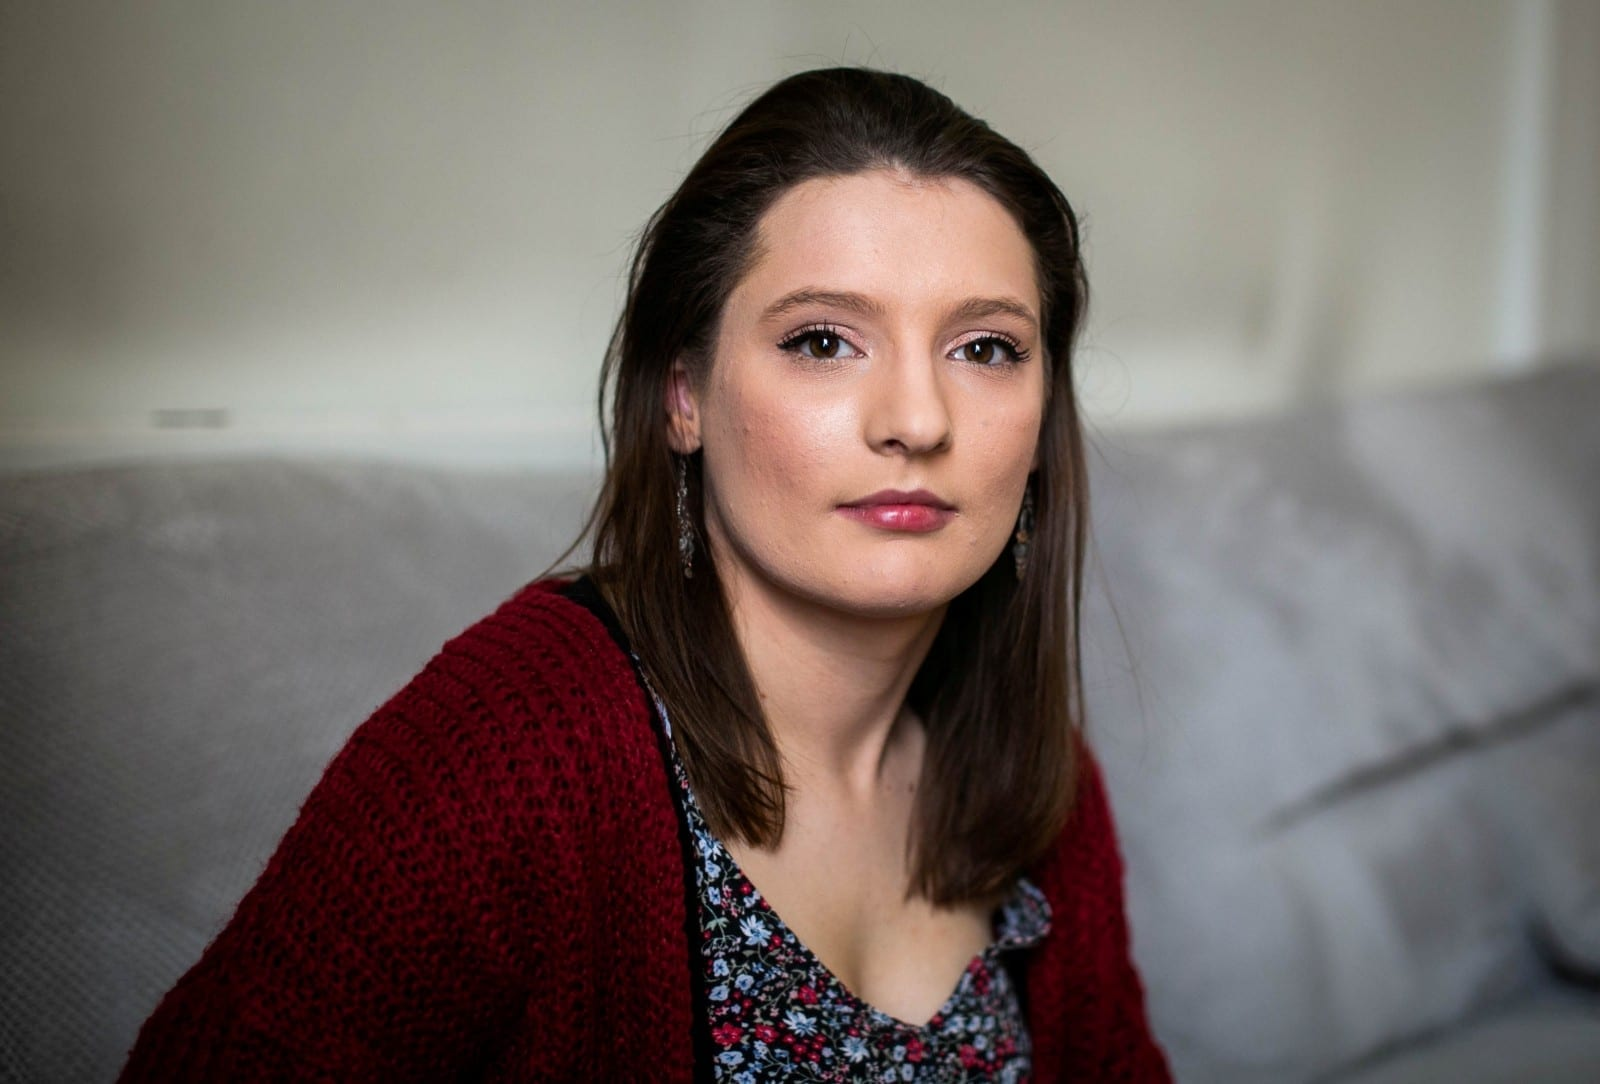 "'Words Cannot Express How Let Down I Feel By The System' – Mum Claims She Is Living ""Every Parent's Worst Nightmare"" As She Remains In Jail For Nearly Killing Her Baby – Despite High Court Judge Ruling The DAD Responsible"